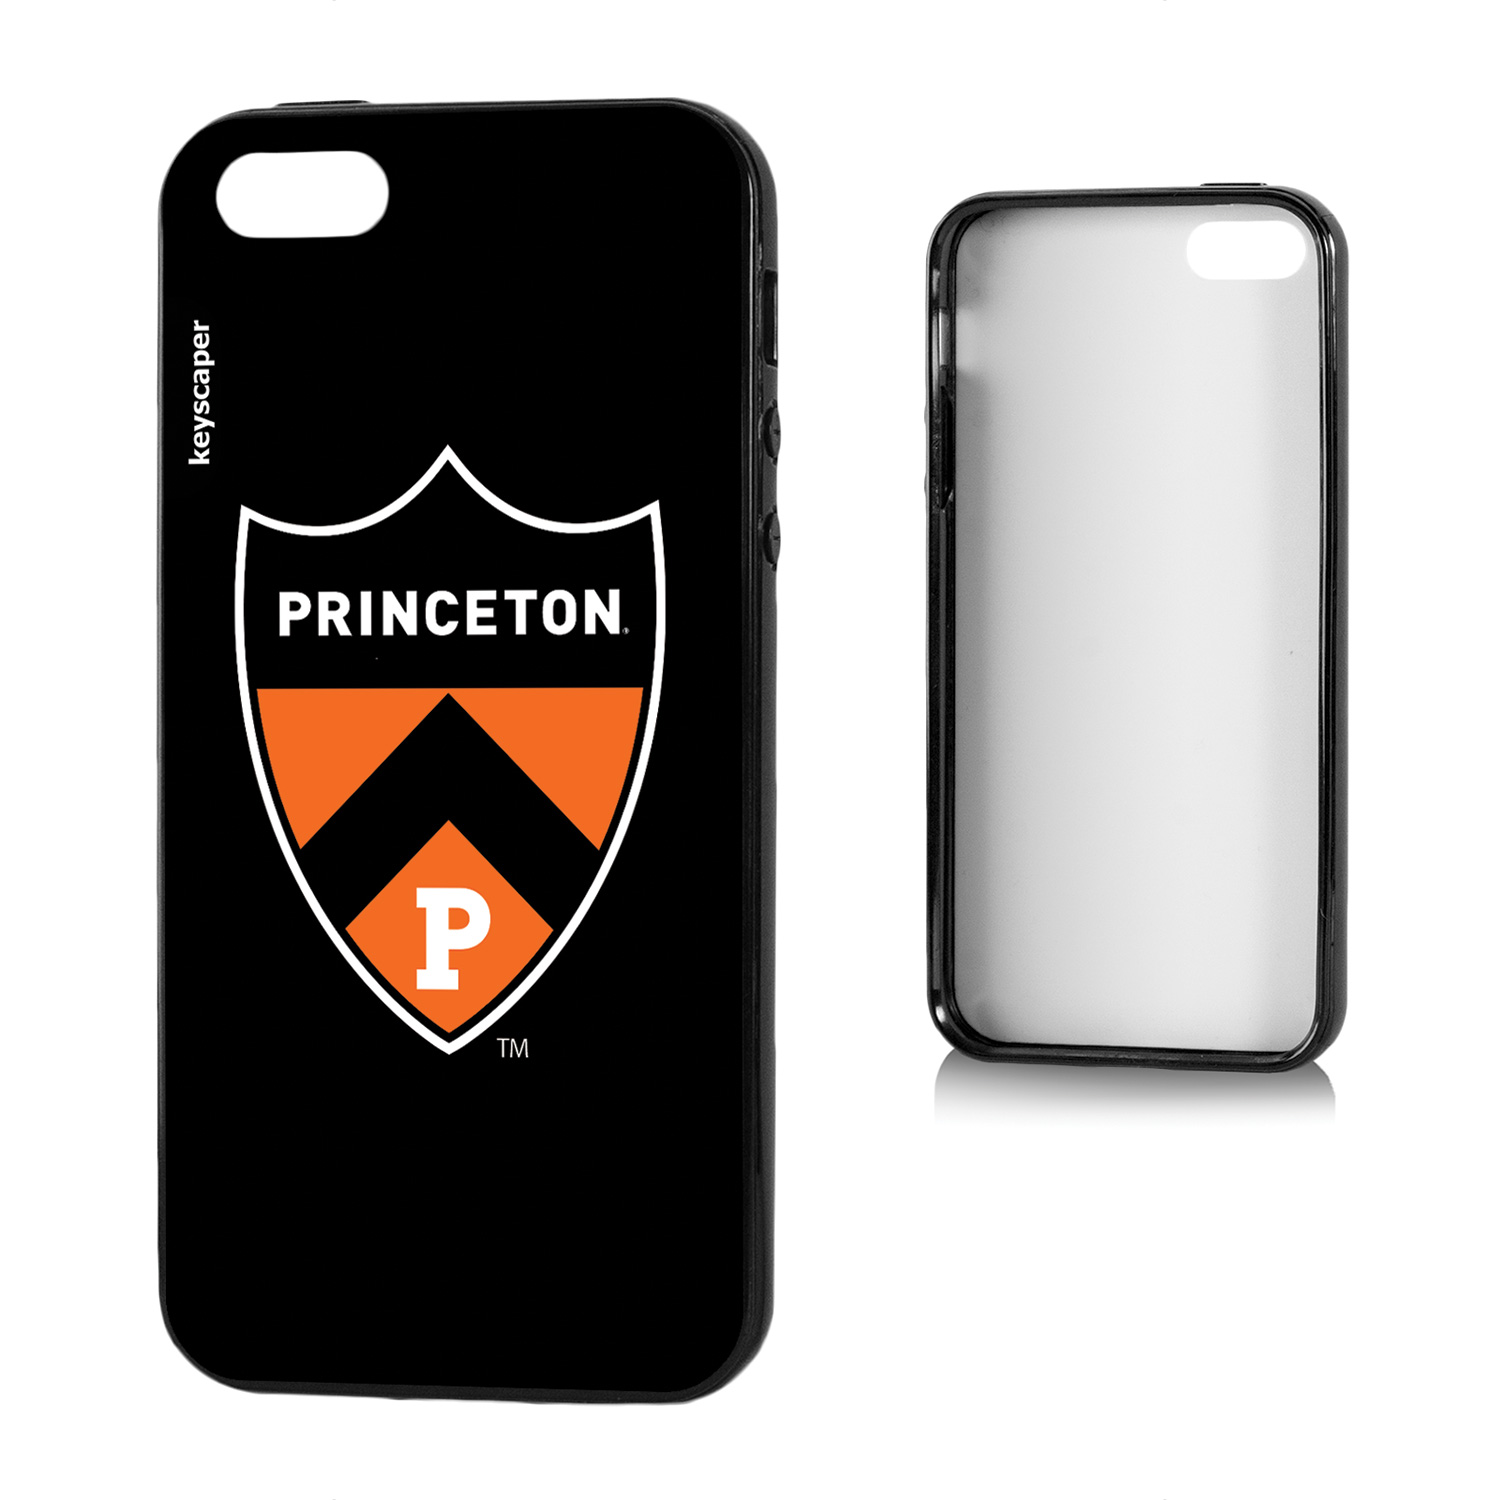 Princeton Tigers iPhone 5 and iPhone 5s Bumper Case